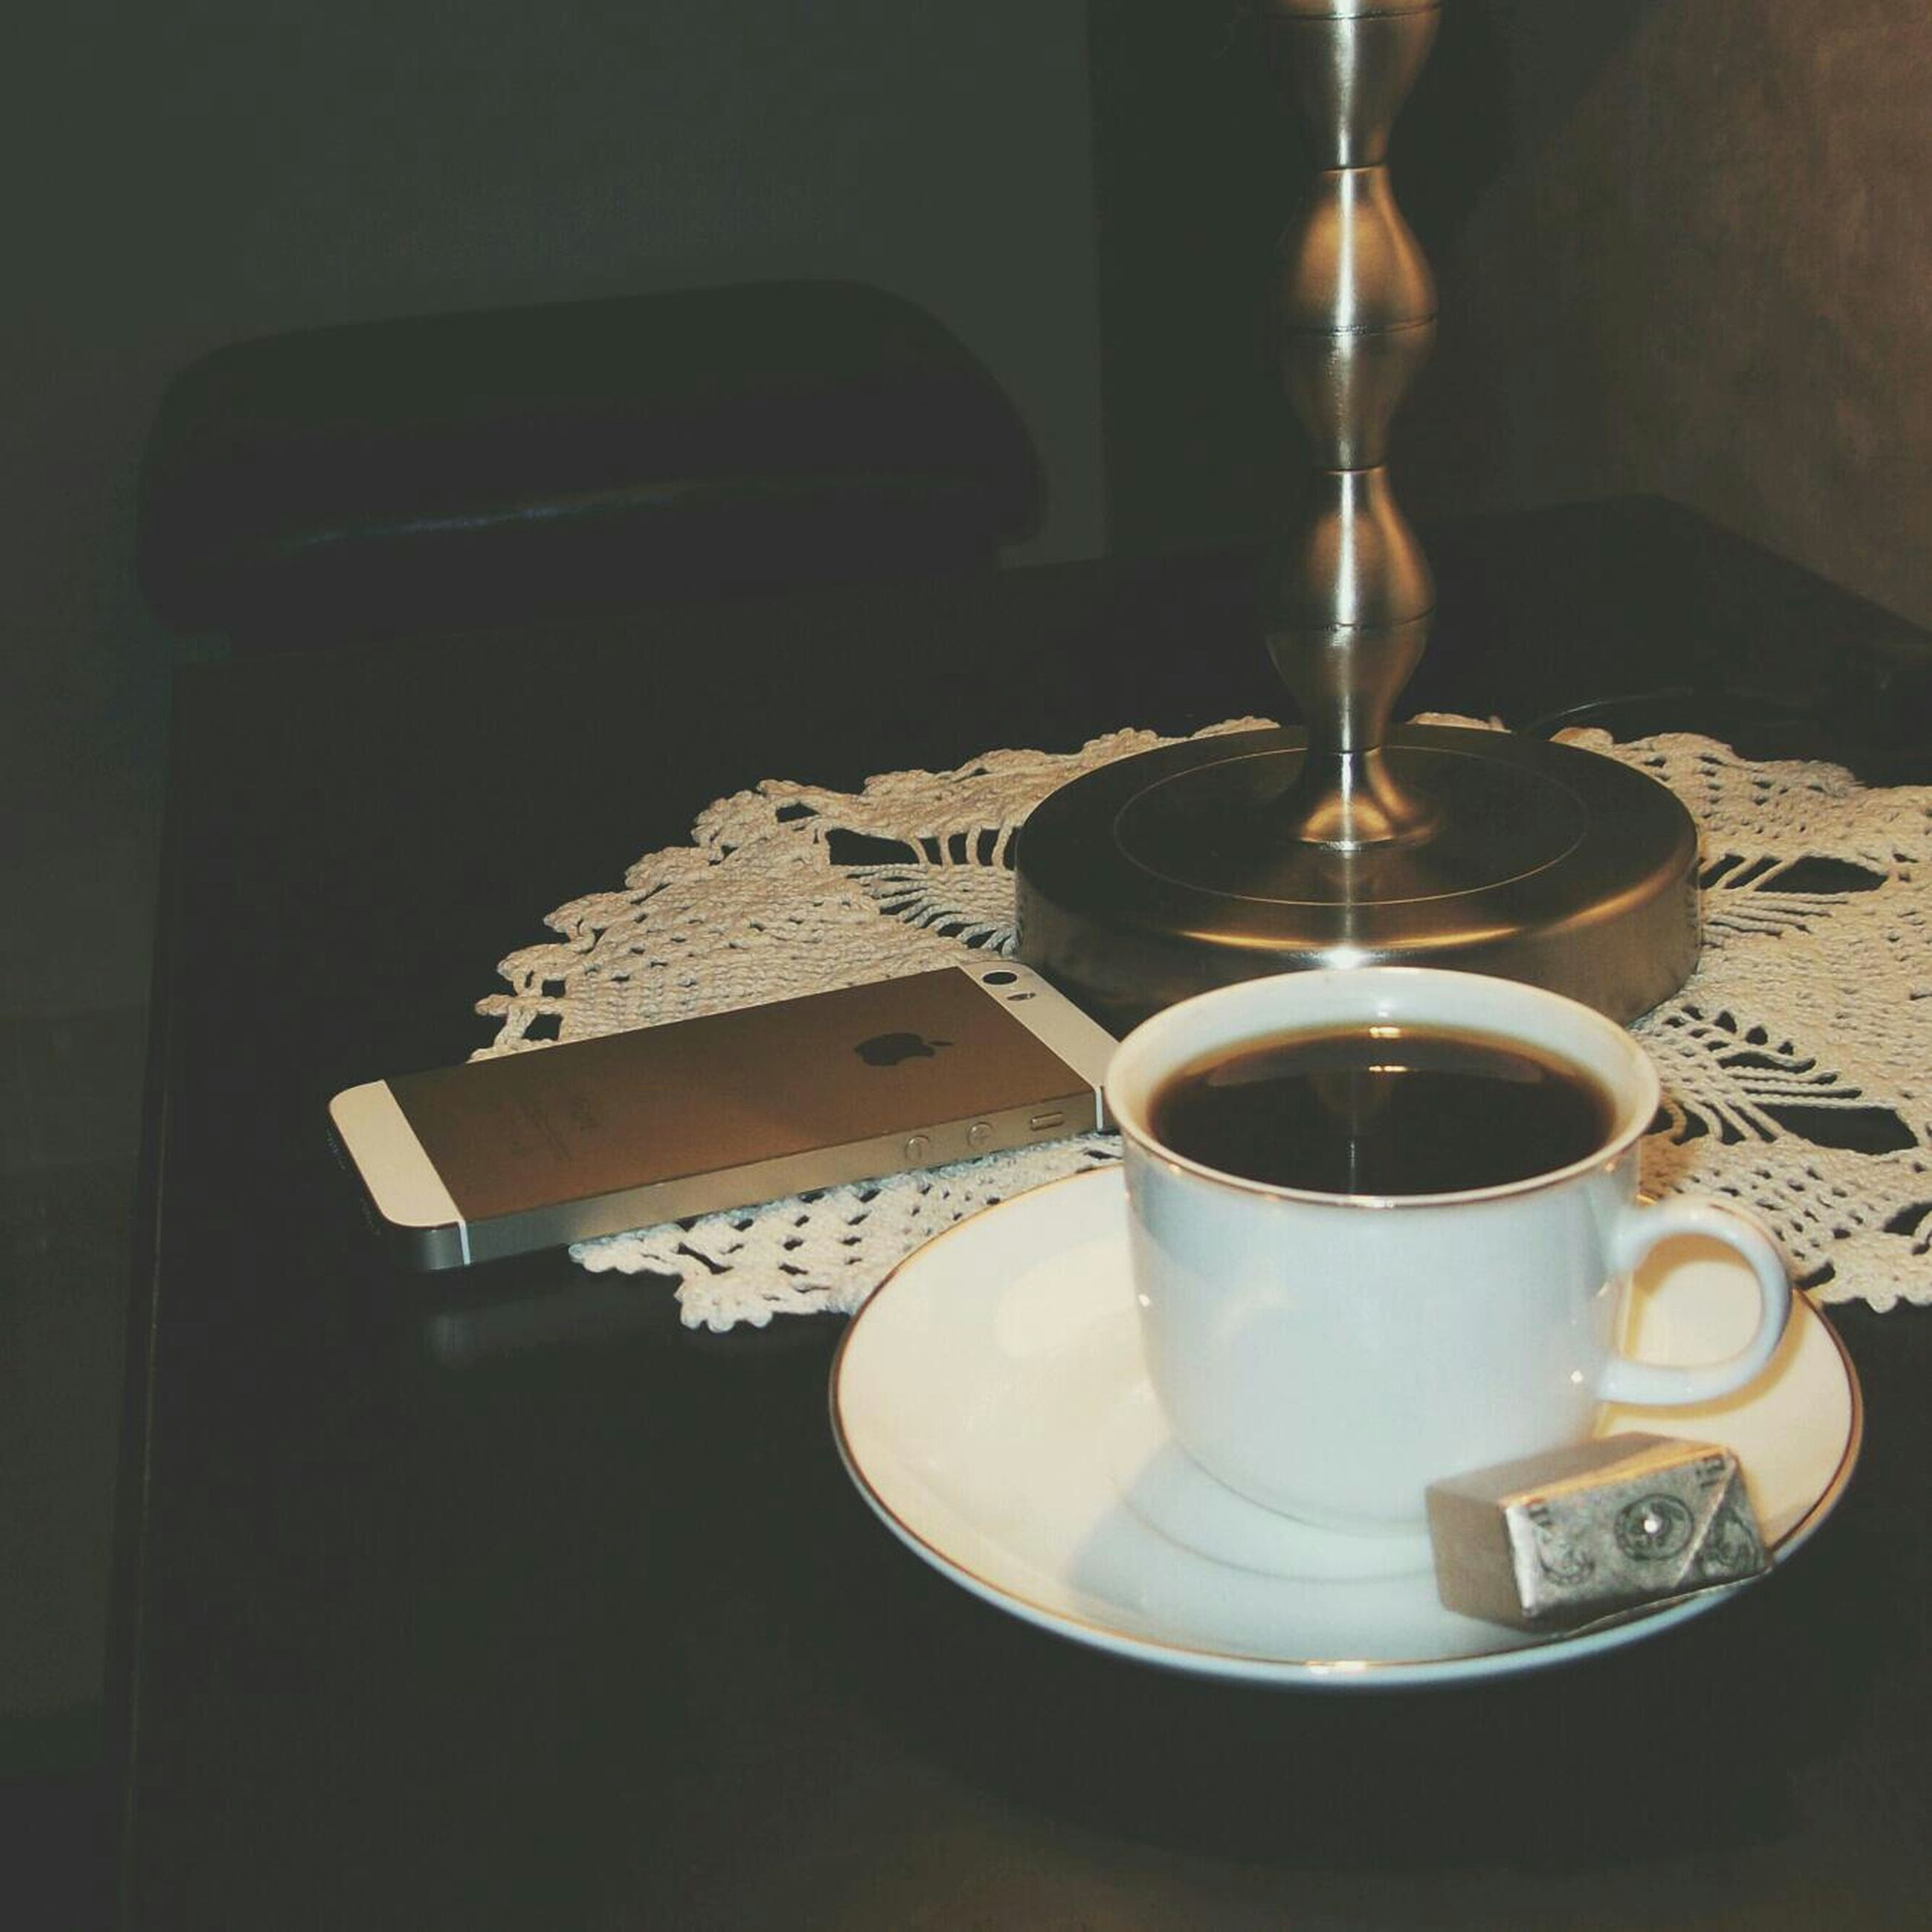 indoors, coffee cup, food and drink, table, drink, coffee - drink, still life, saucer, refreshment, cup, freshness, coffee, high angle view, spoon, plate, tea cup, close-up, no people, breakfast, frothy drink